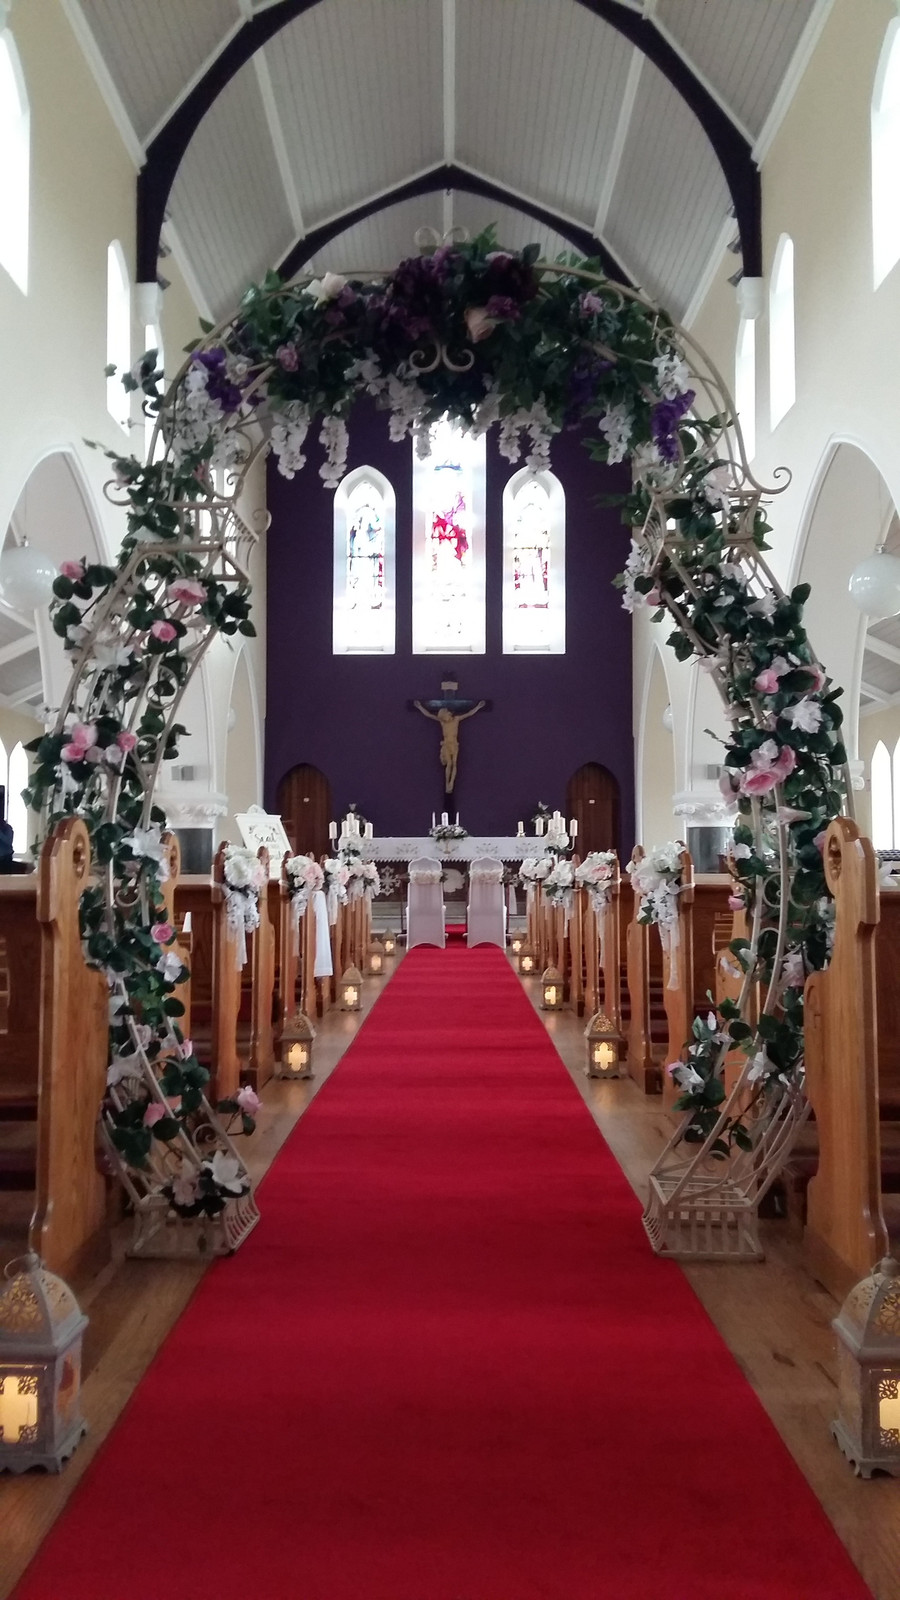 Affordable wedding wedding decor packages for hire dublin ireland home junglespirit Images